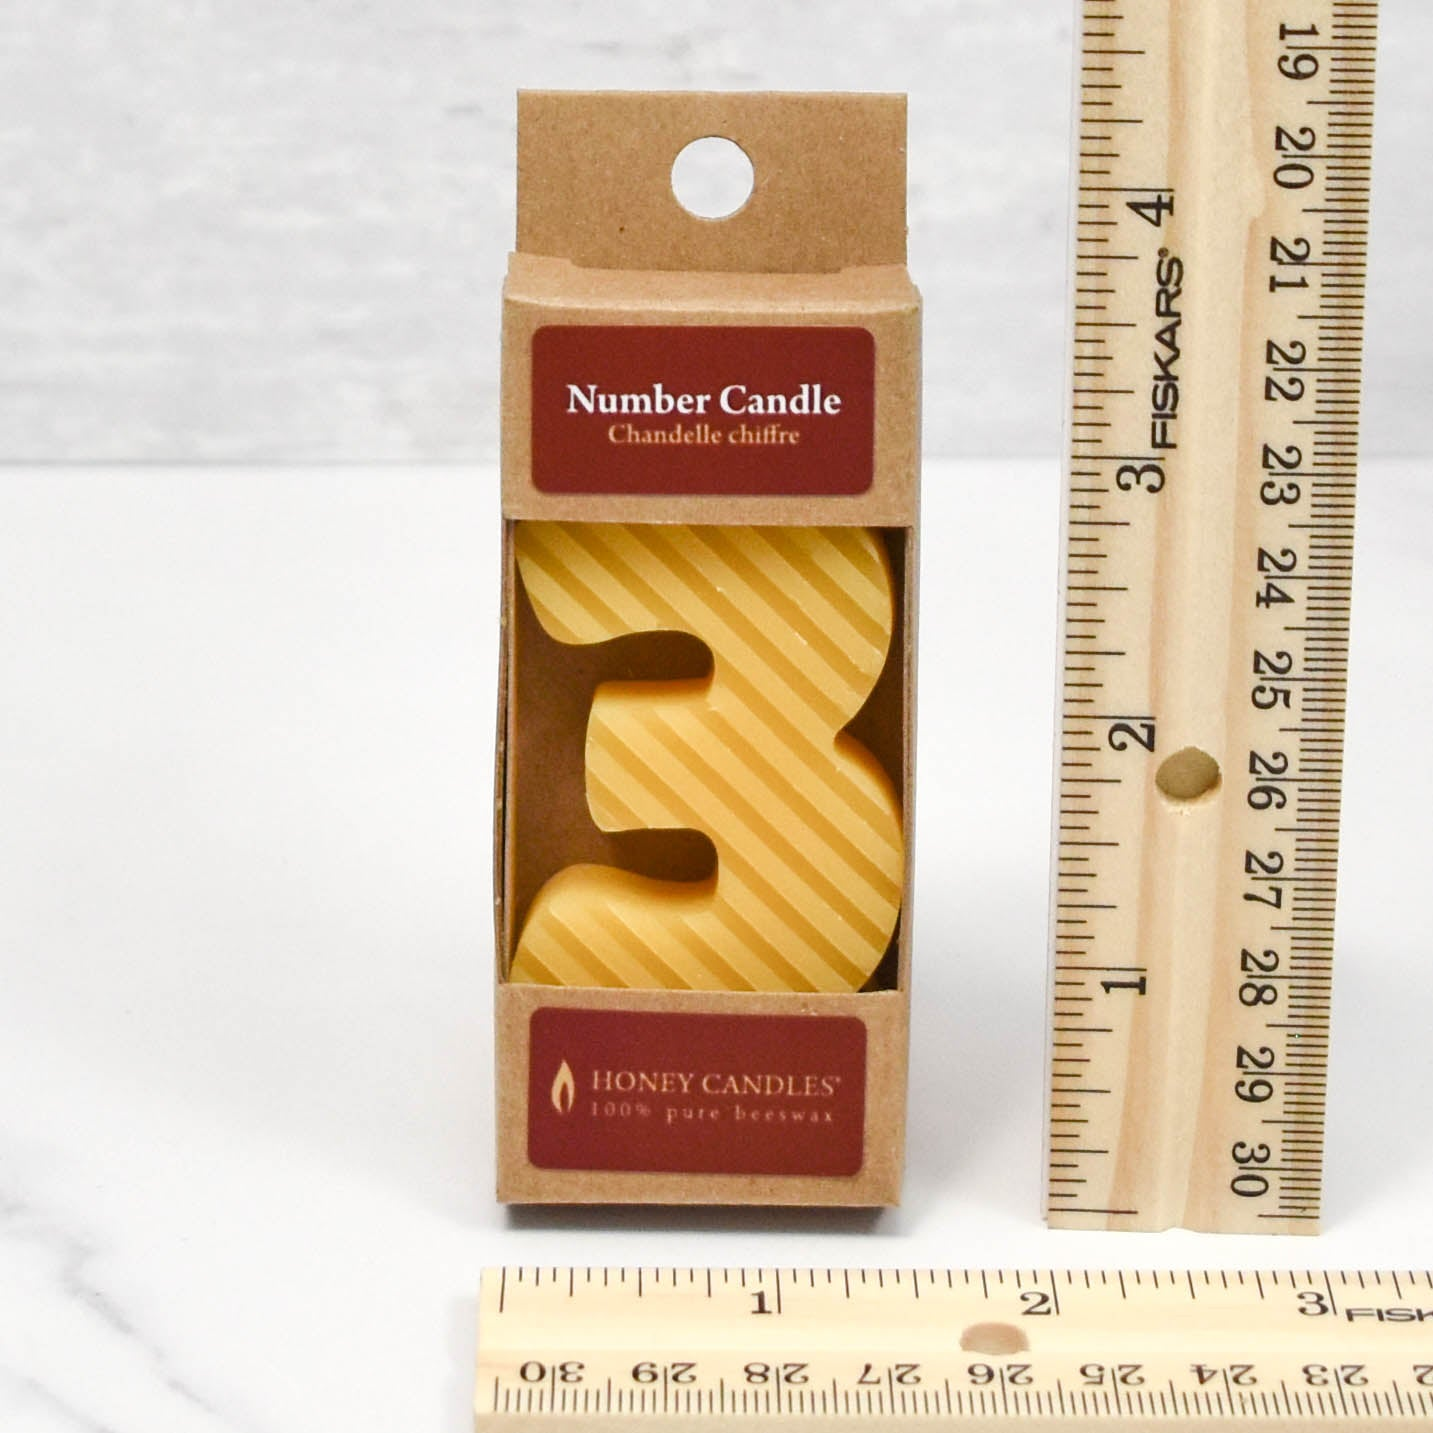 Elegant, pair of formal beeswax candles, 12 inches in height, with a golden to yellow color and a natural soft honey aroma.